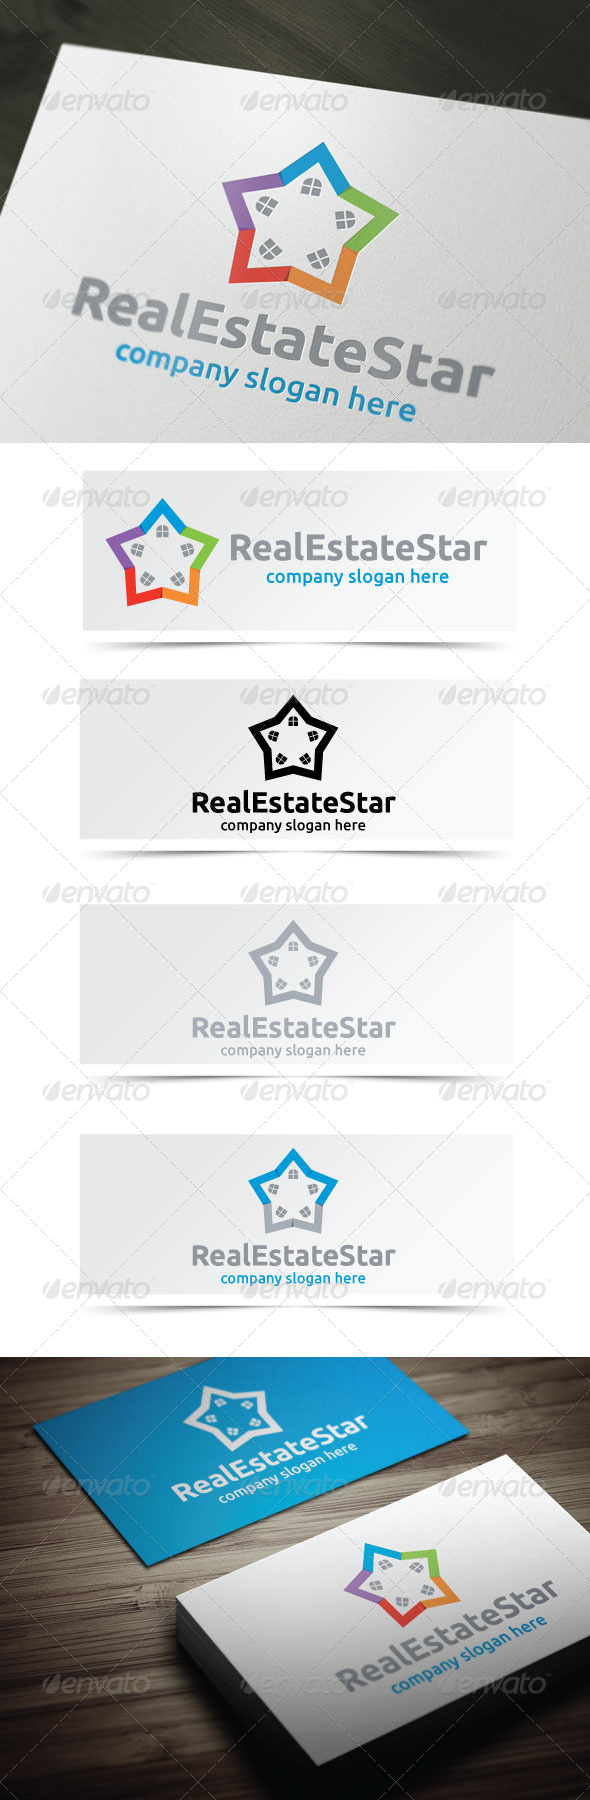 Real Estate Star